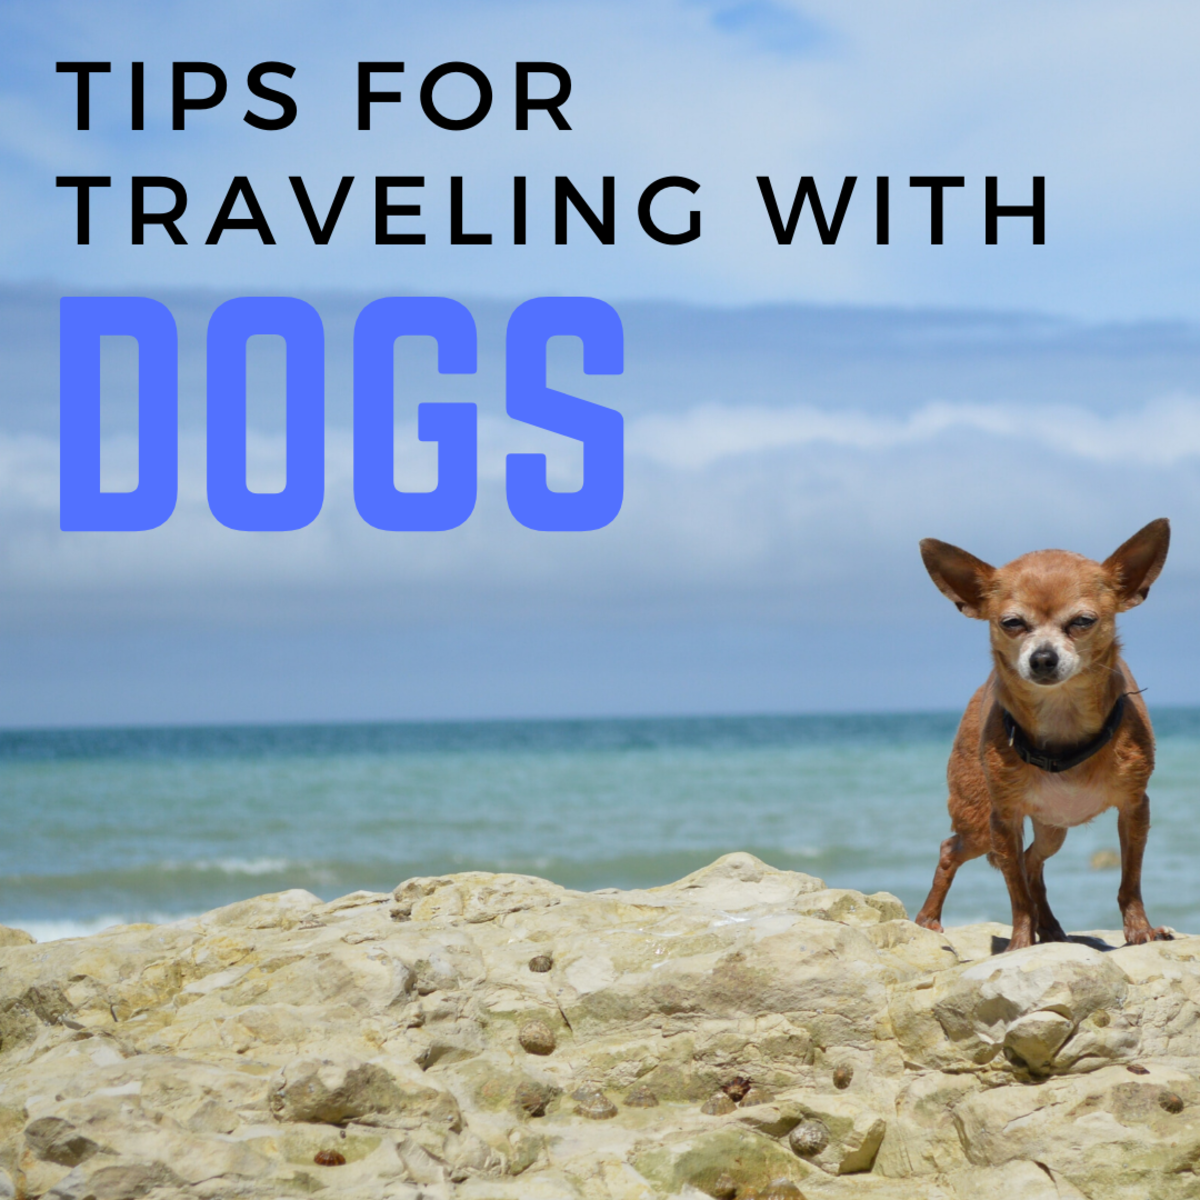 Personal Tips for Traveling With Chihuahuas